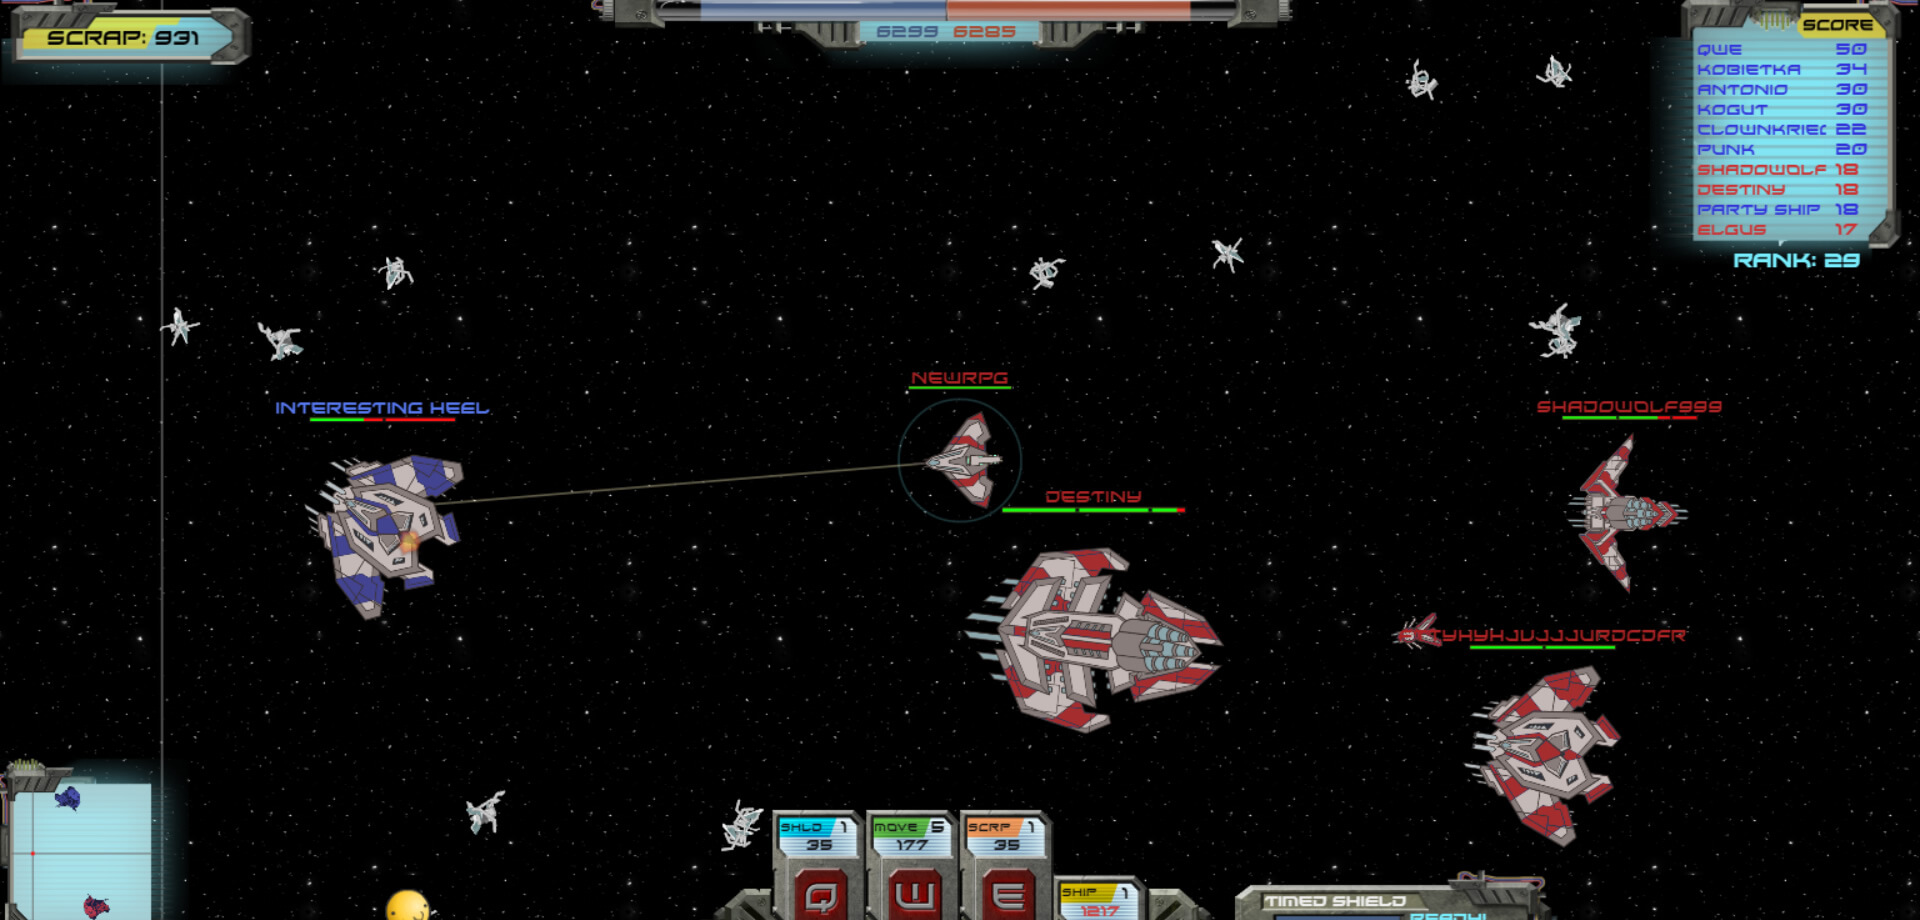 warin-space action SciFi io game